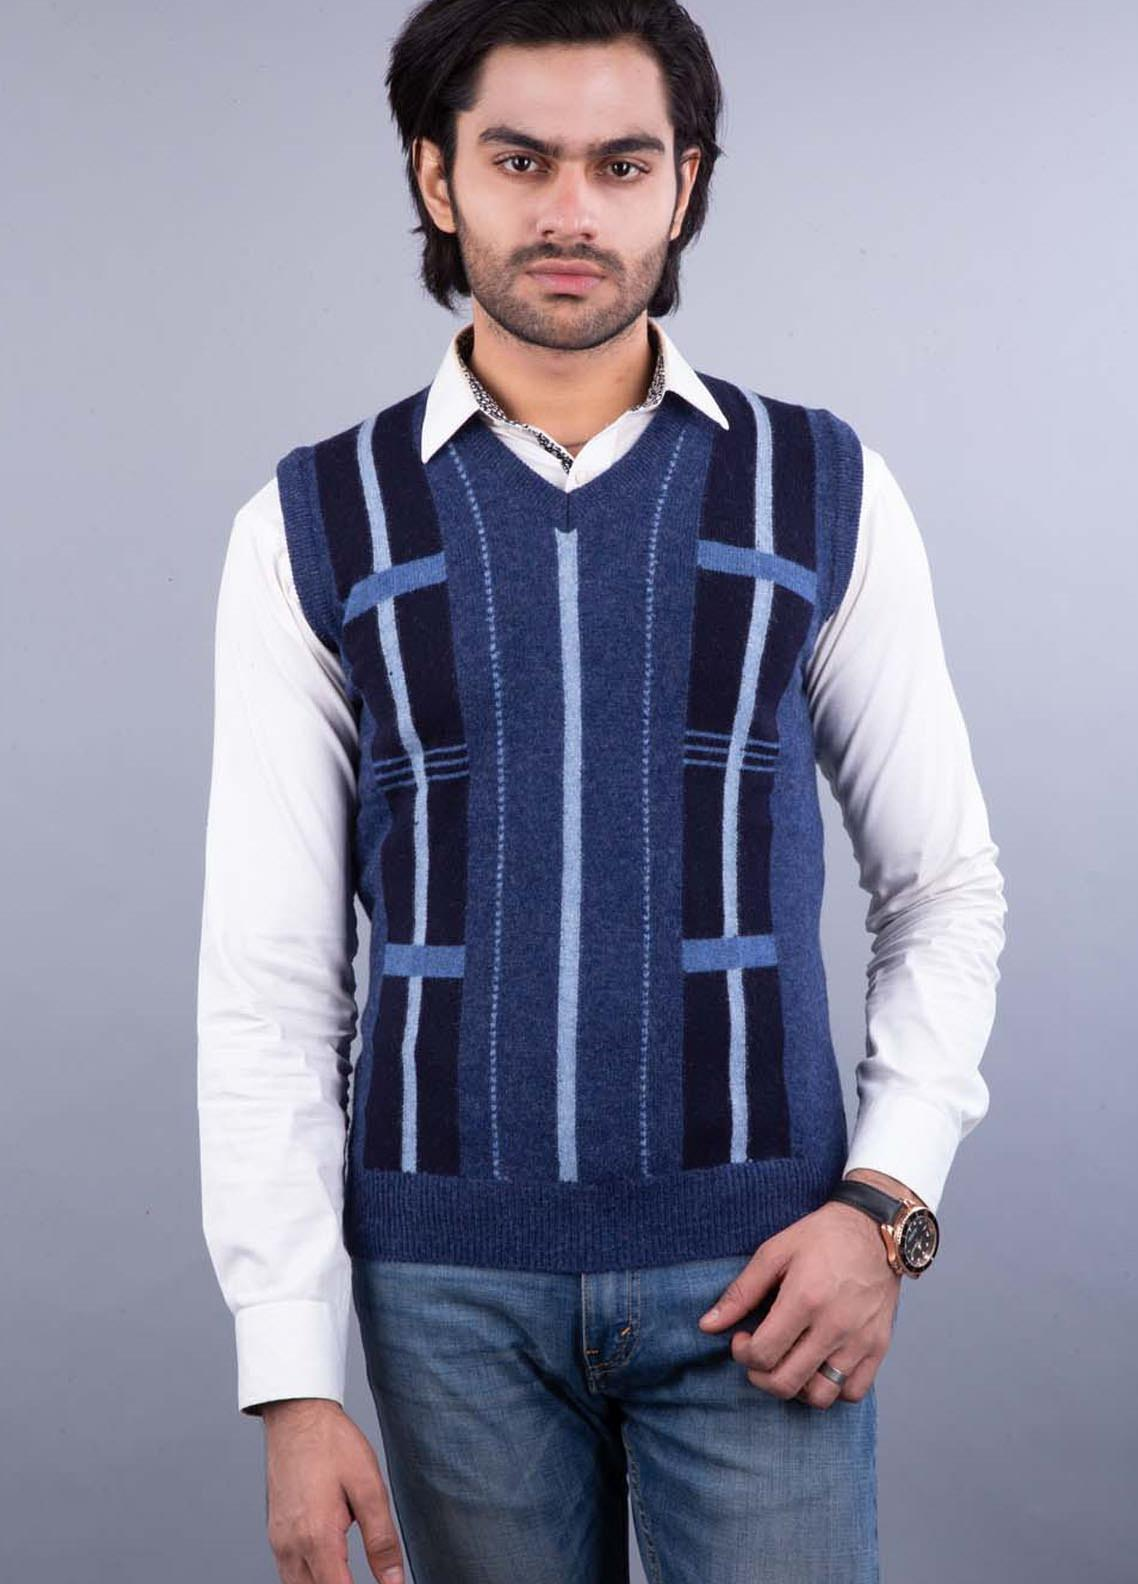 Oxford Lambswool Sleeveless Sweaters for Men -  503 LMB S-L BLUE